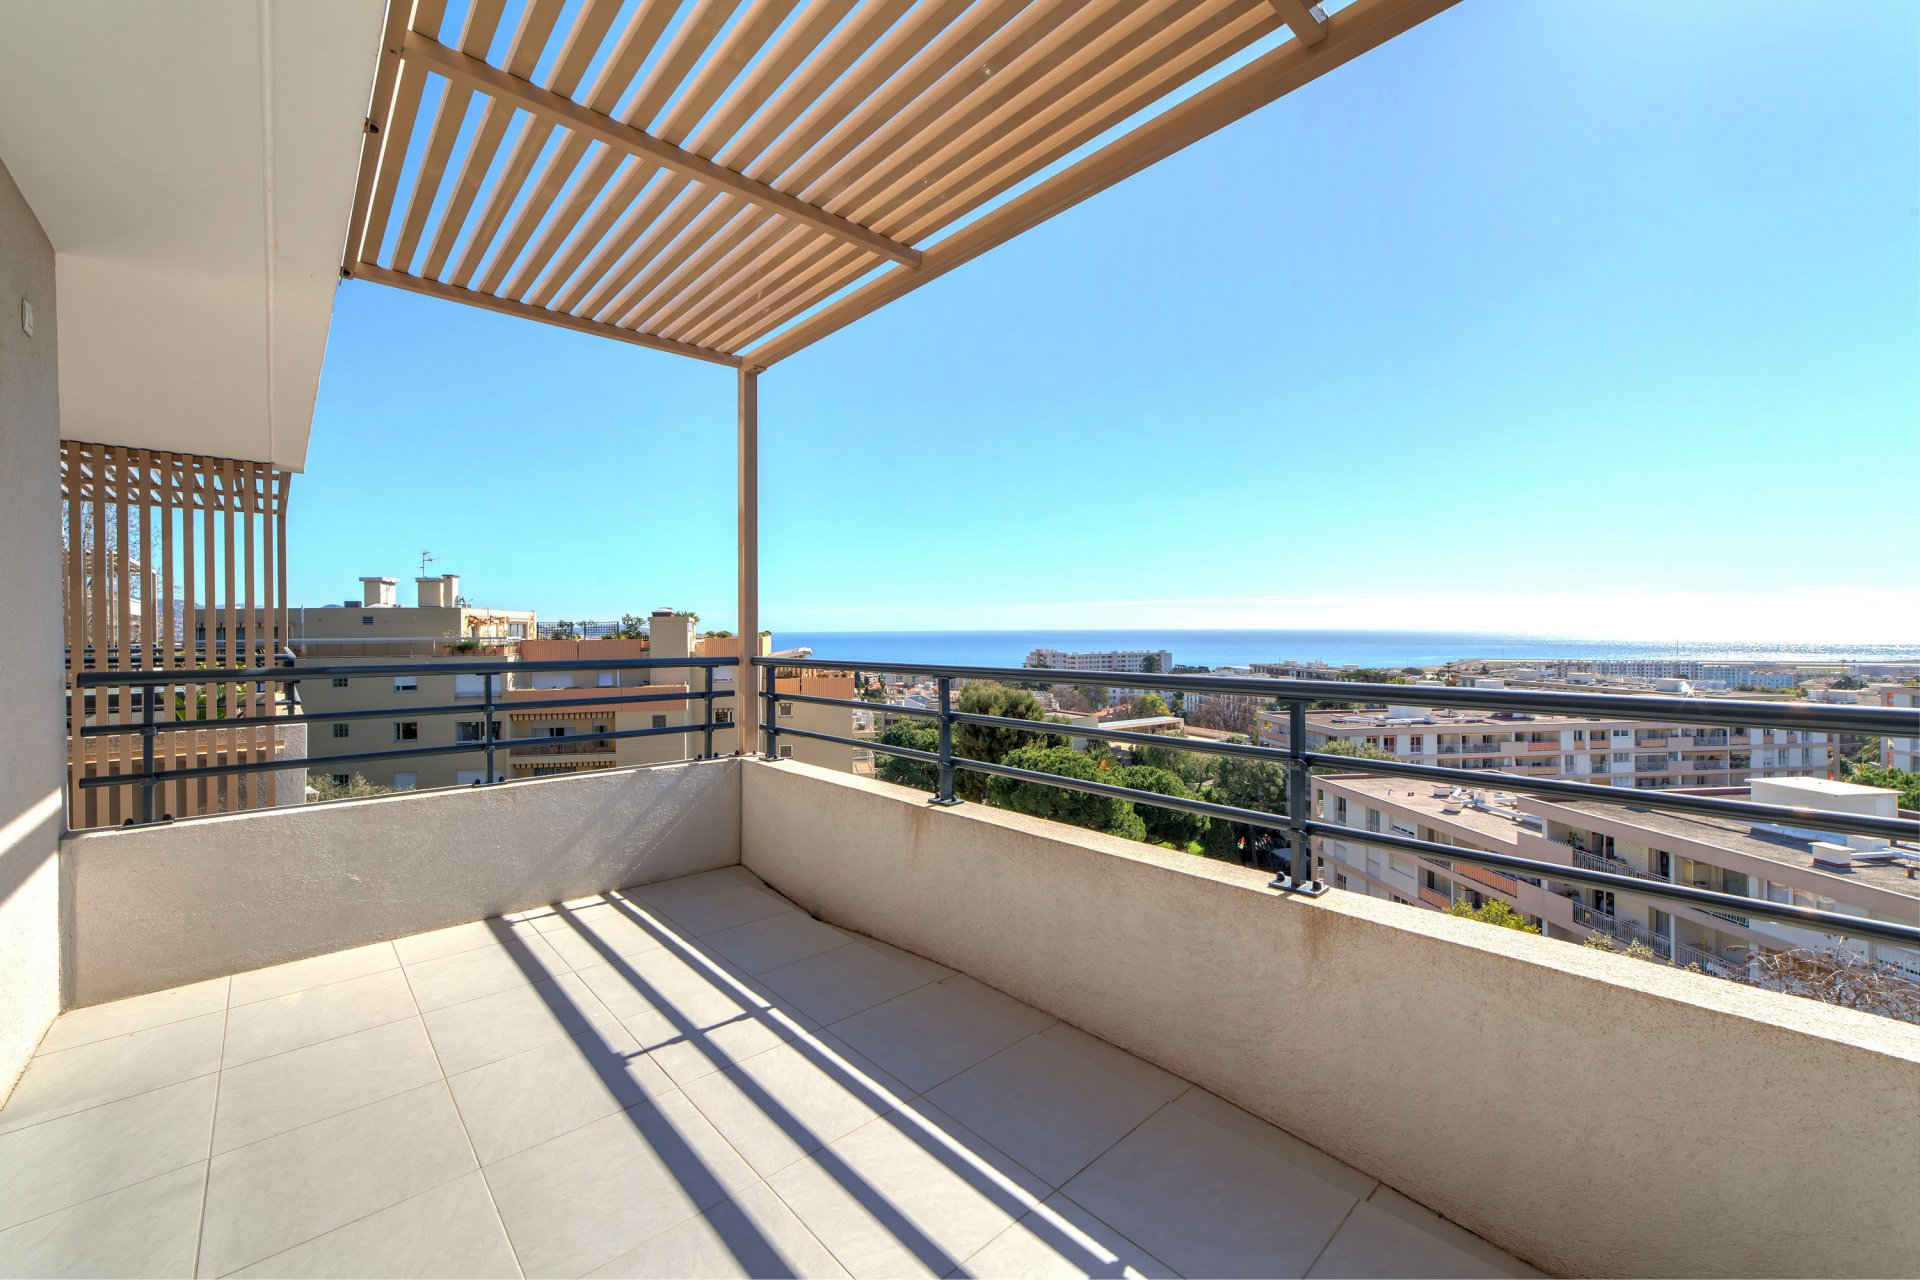 Recent two-bed apartment, pool, panoramic sea view in Nice